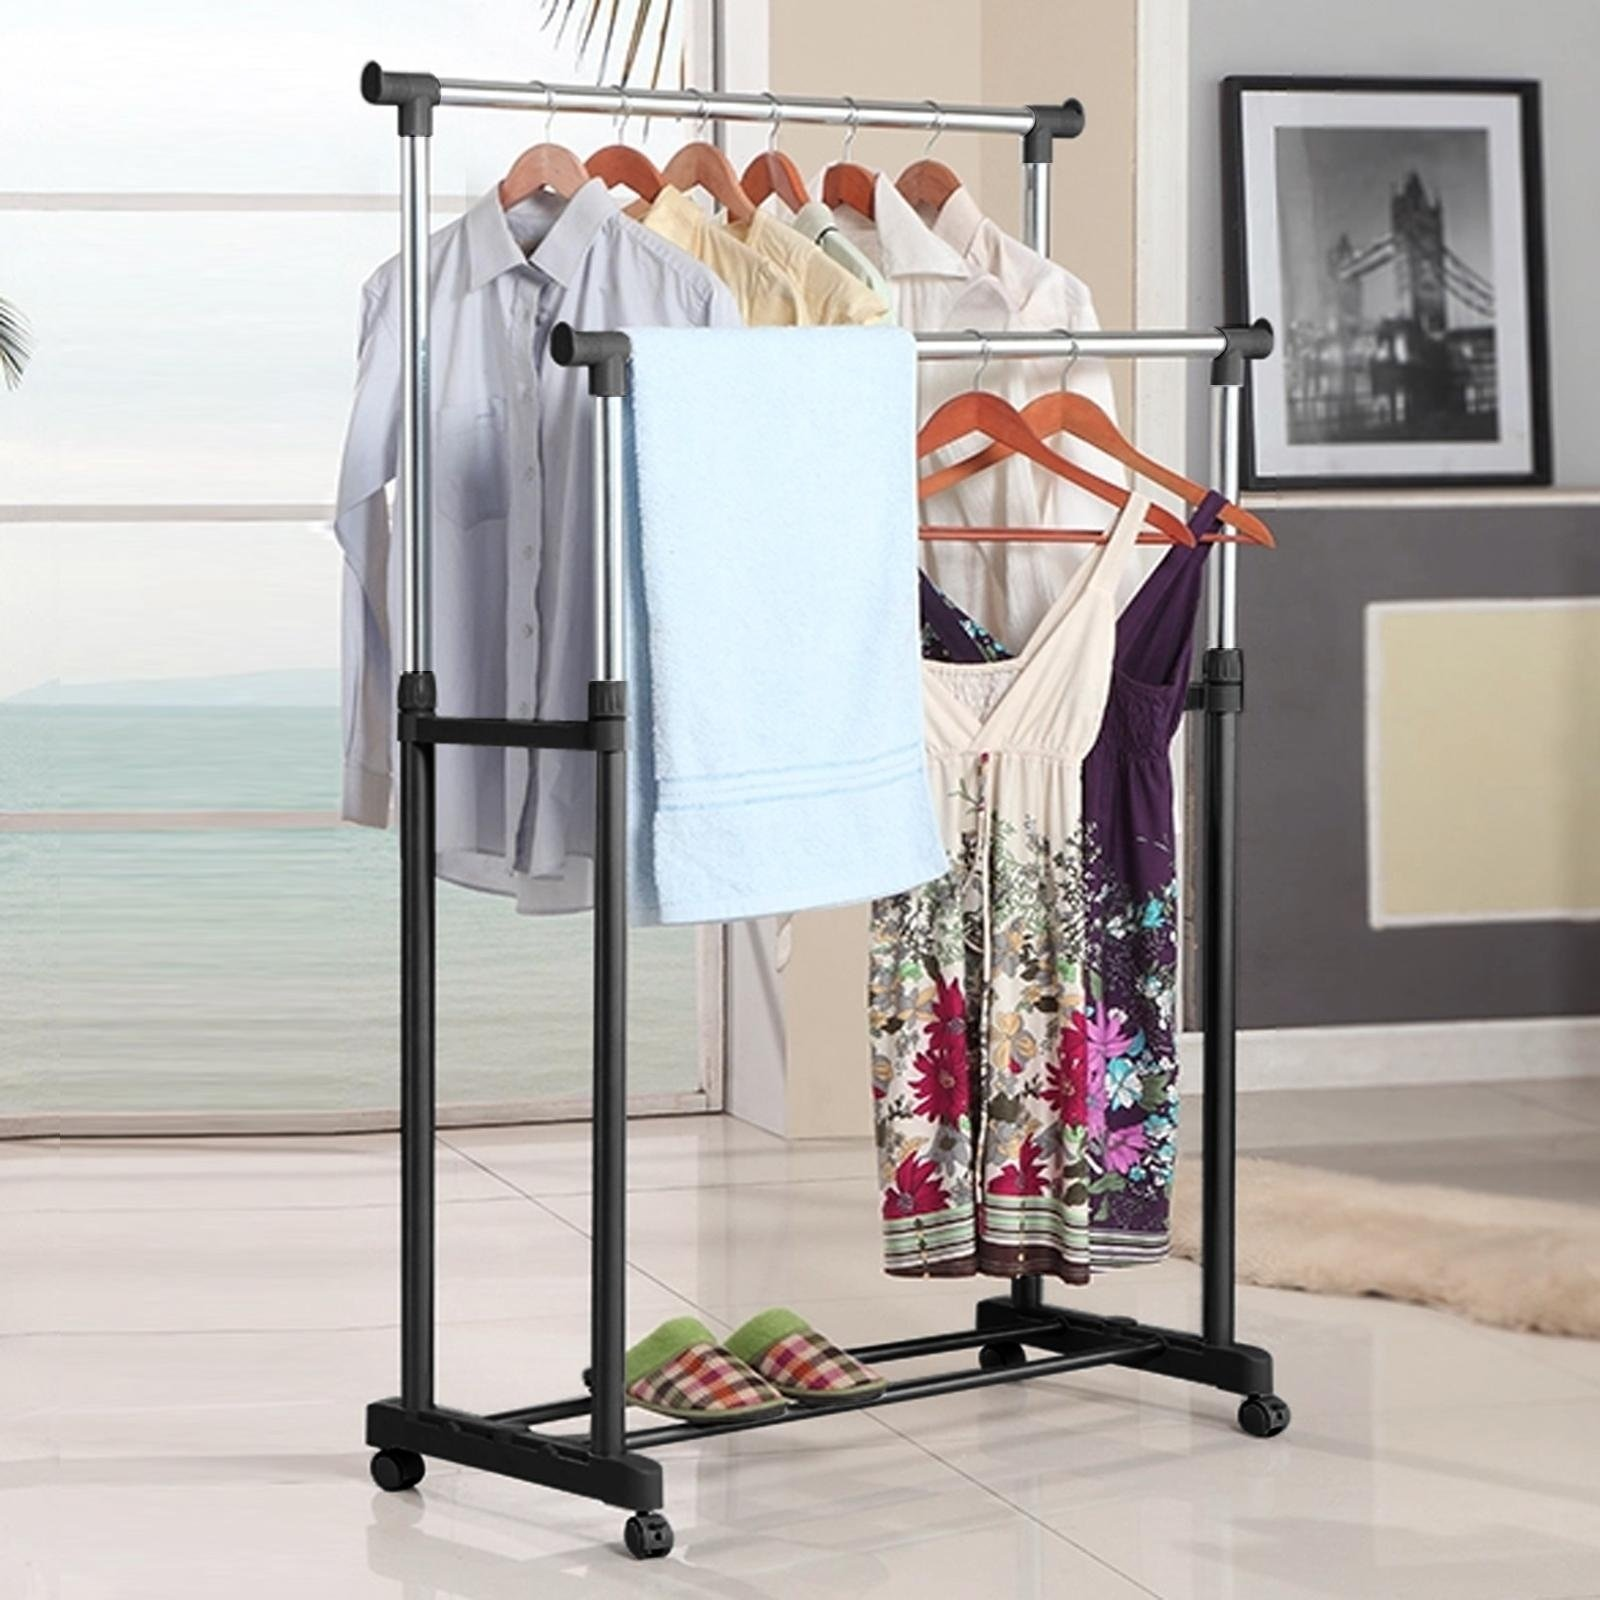 Portable Adjustable Double Clothes Garment Drying Hanging Racks Hangers With Castors and Shoe Rack